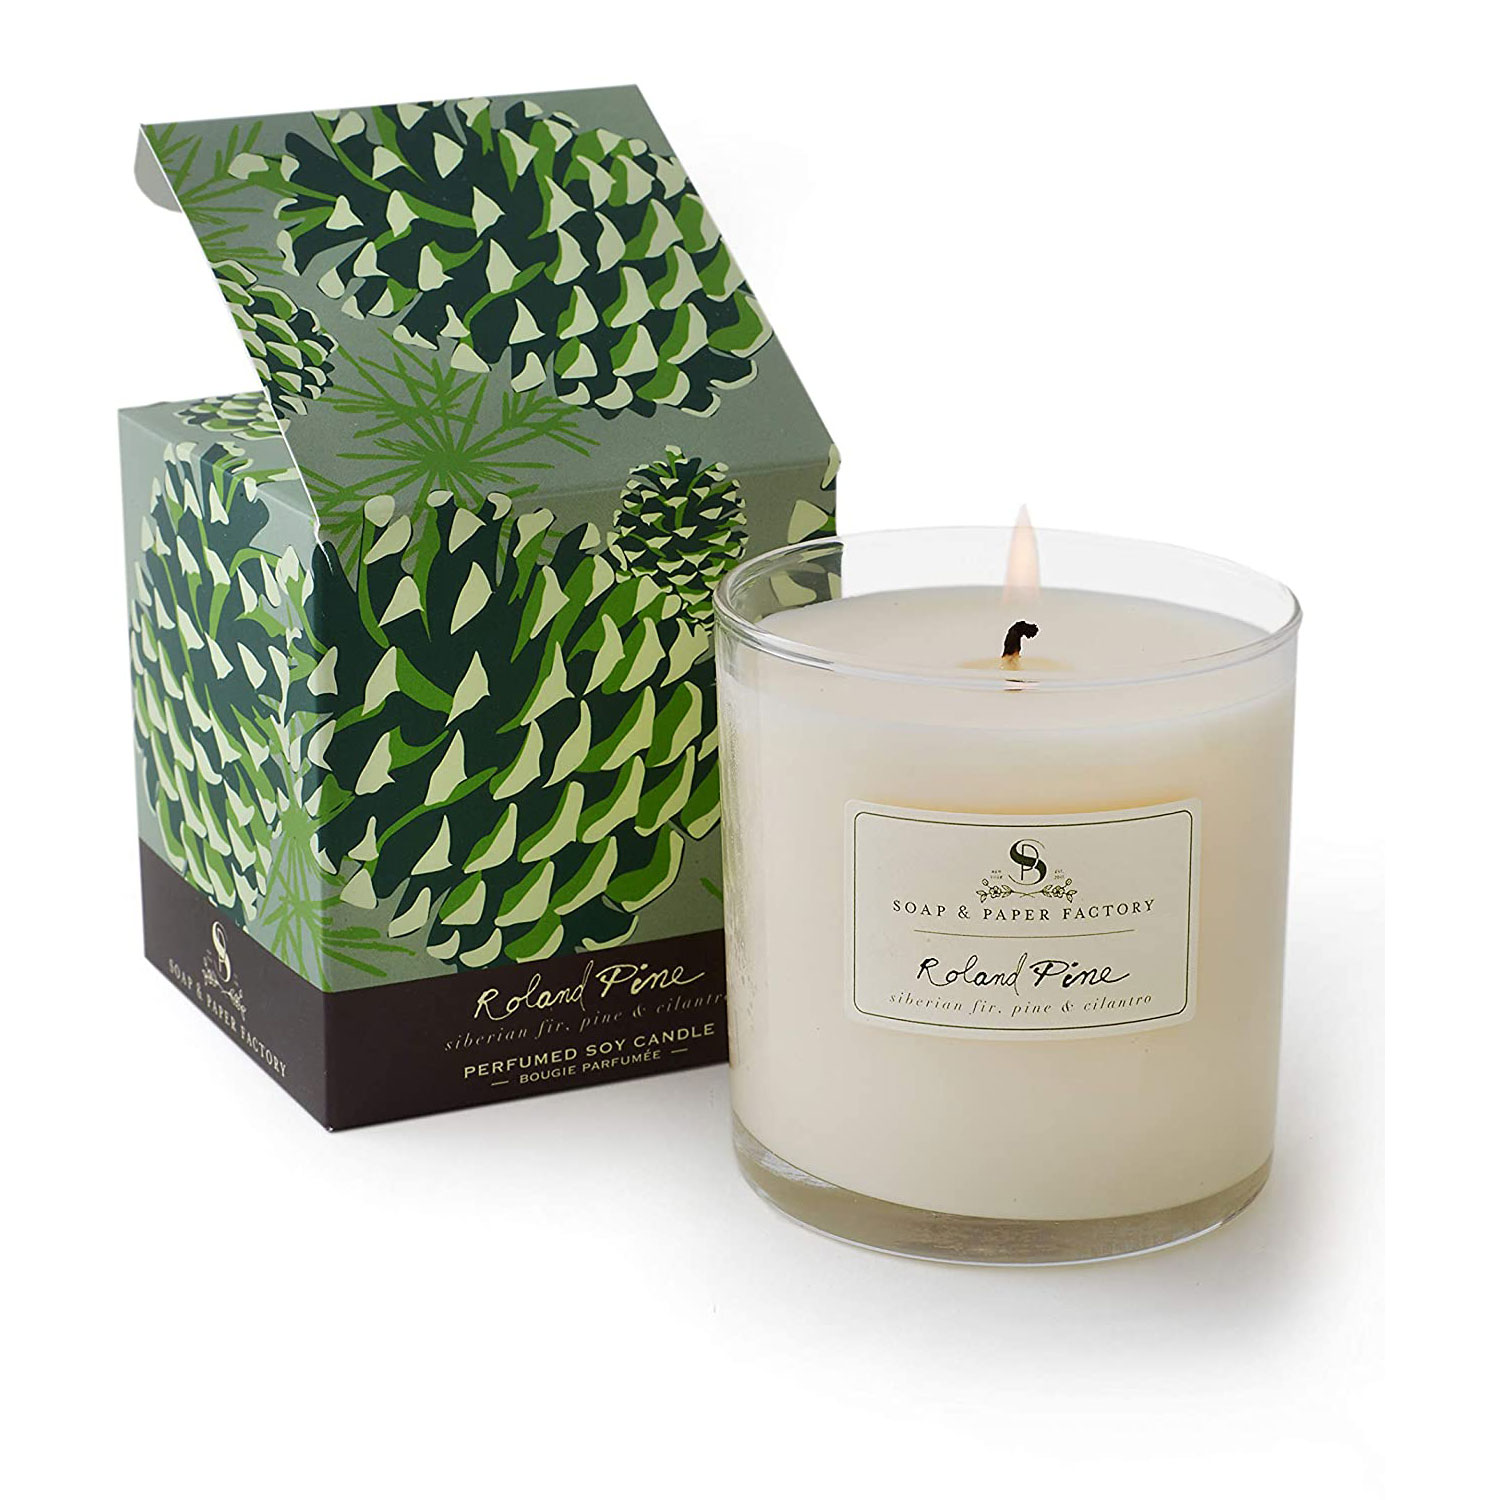 soap paper factory roland pine candle